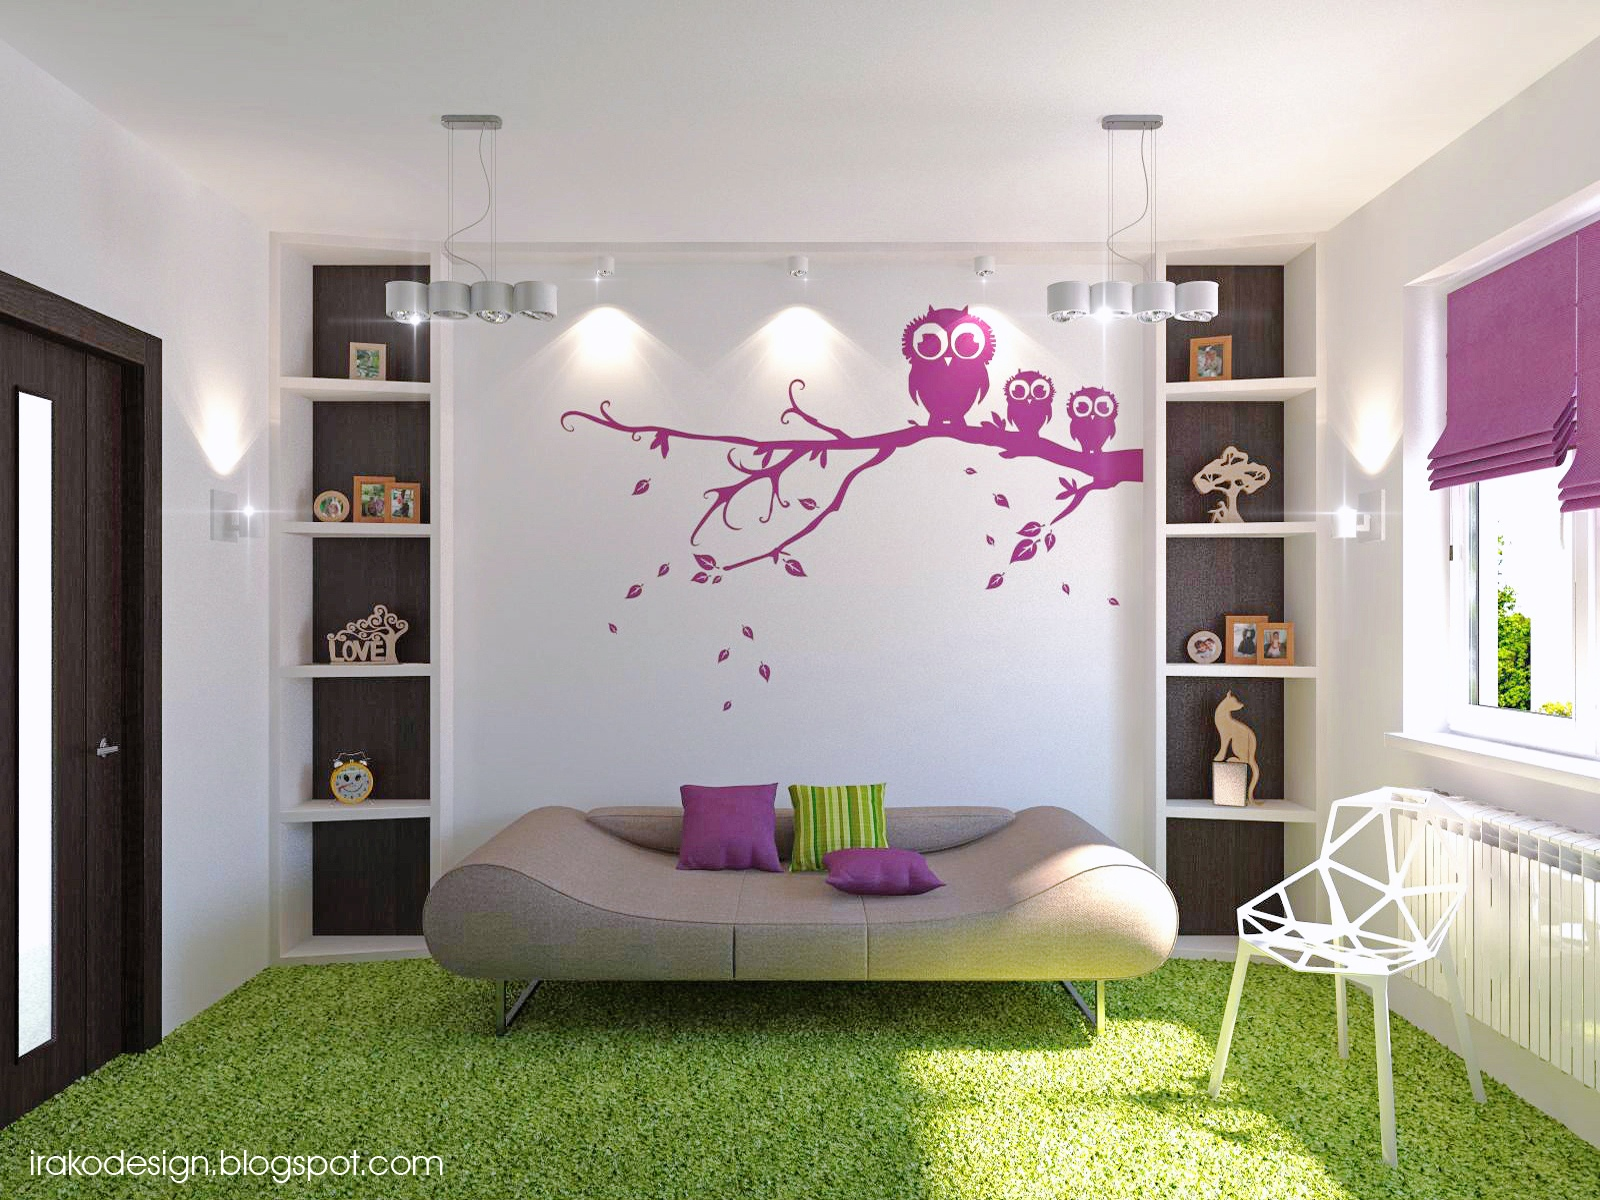 Bedroom wall paint designs for girls - Bedroom Wall Paint Designs For Girls 10